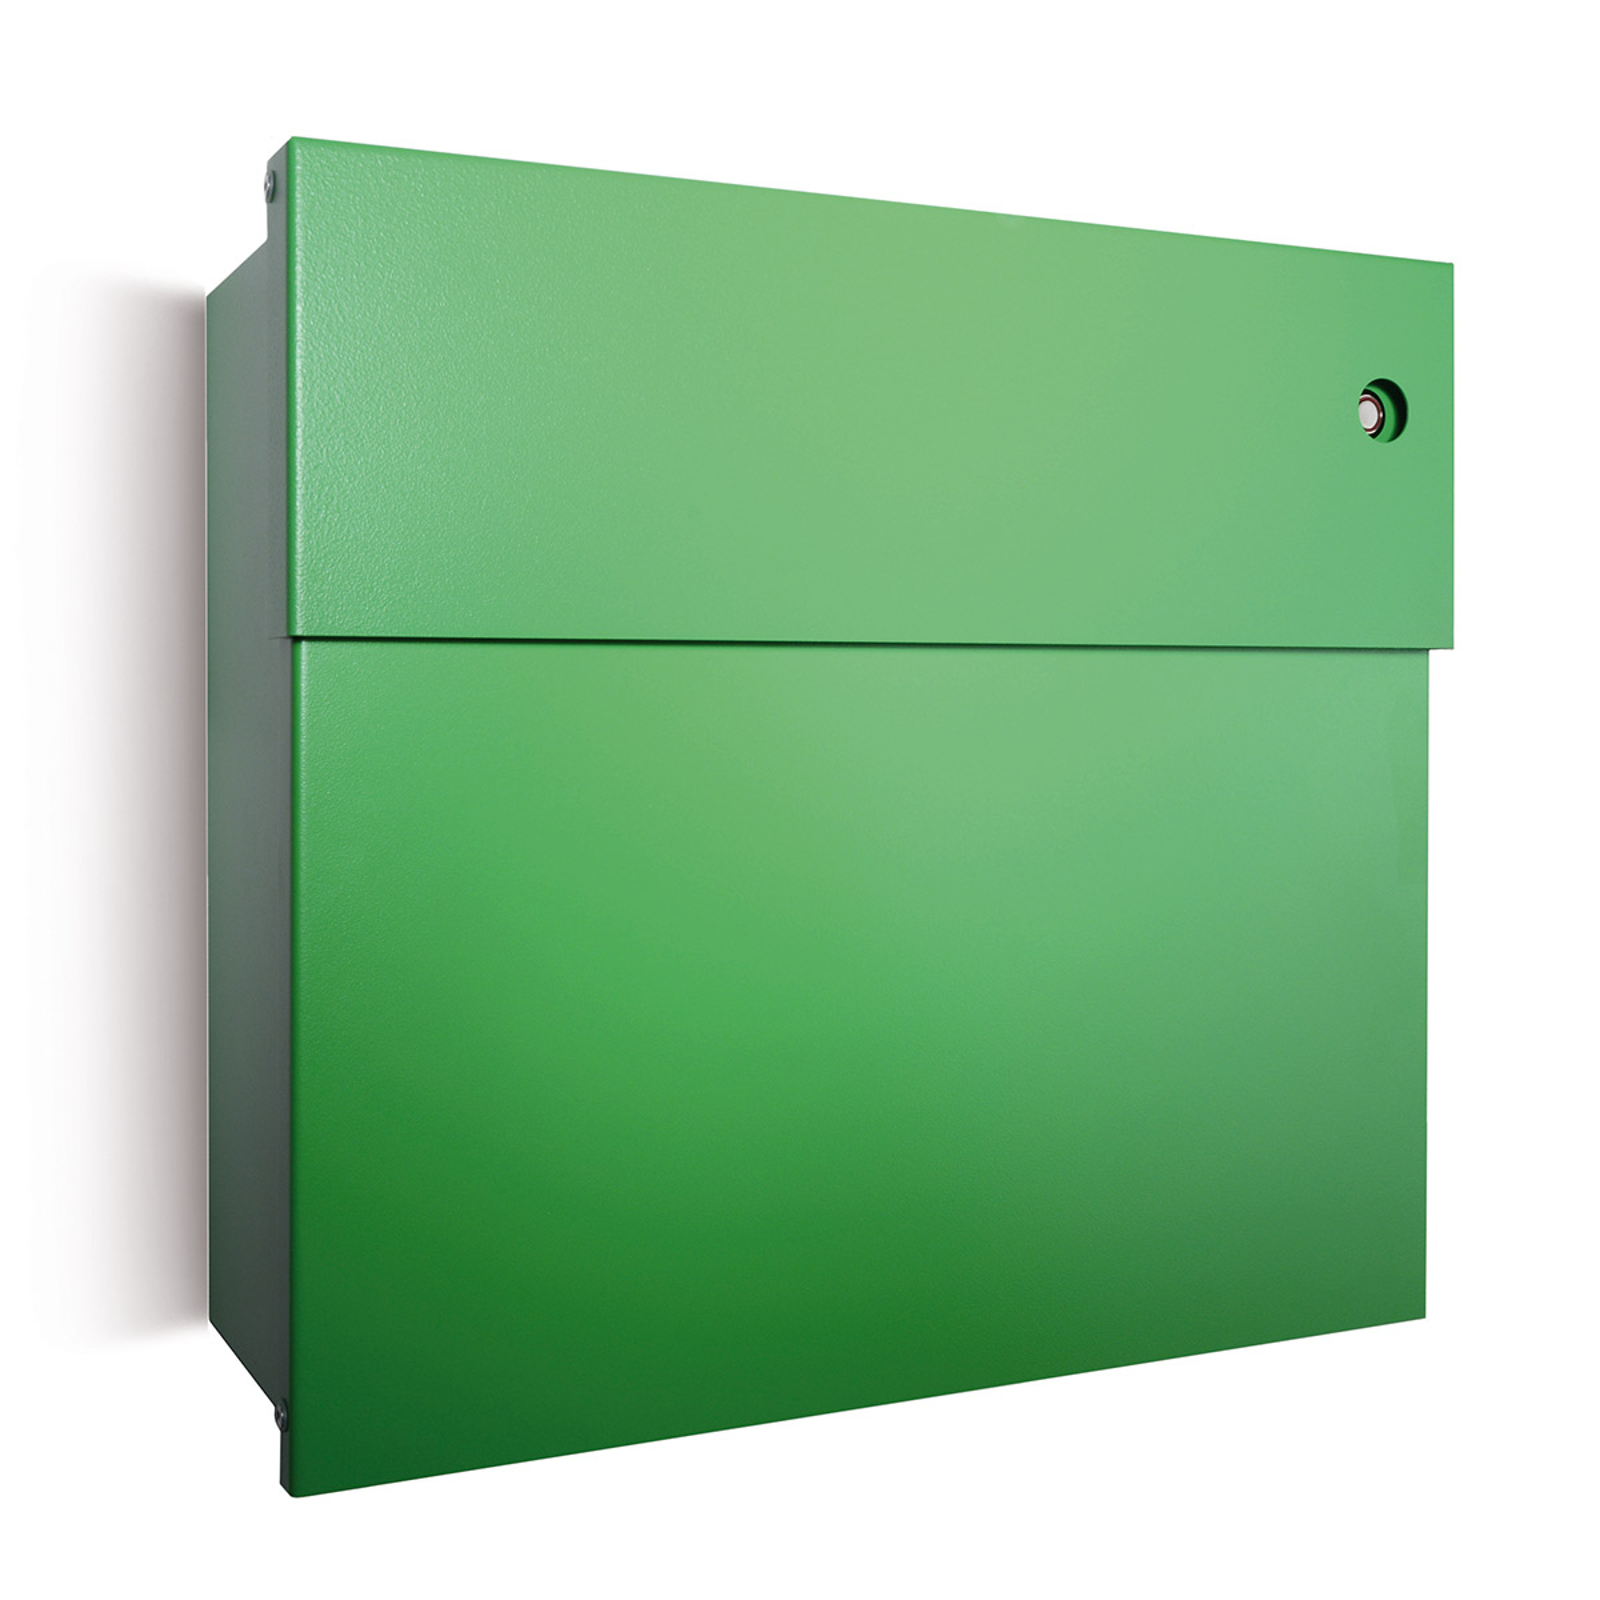 Letterman IV letterbox, red doorbell, green_1057144_1